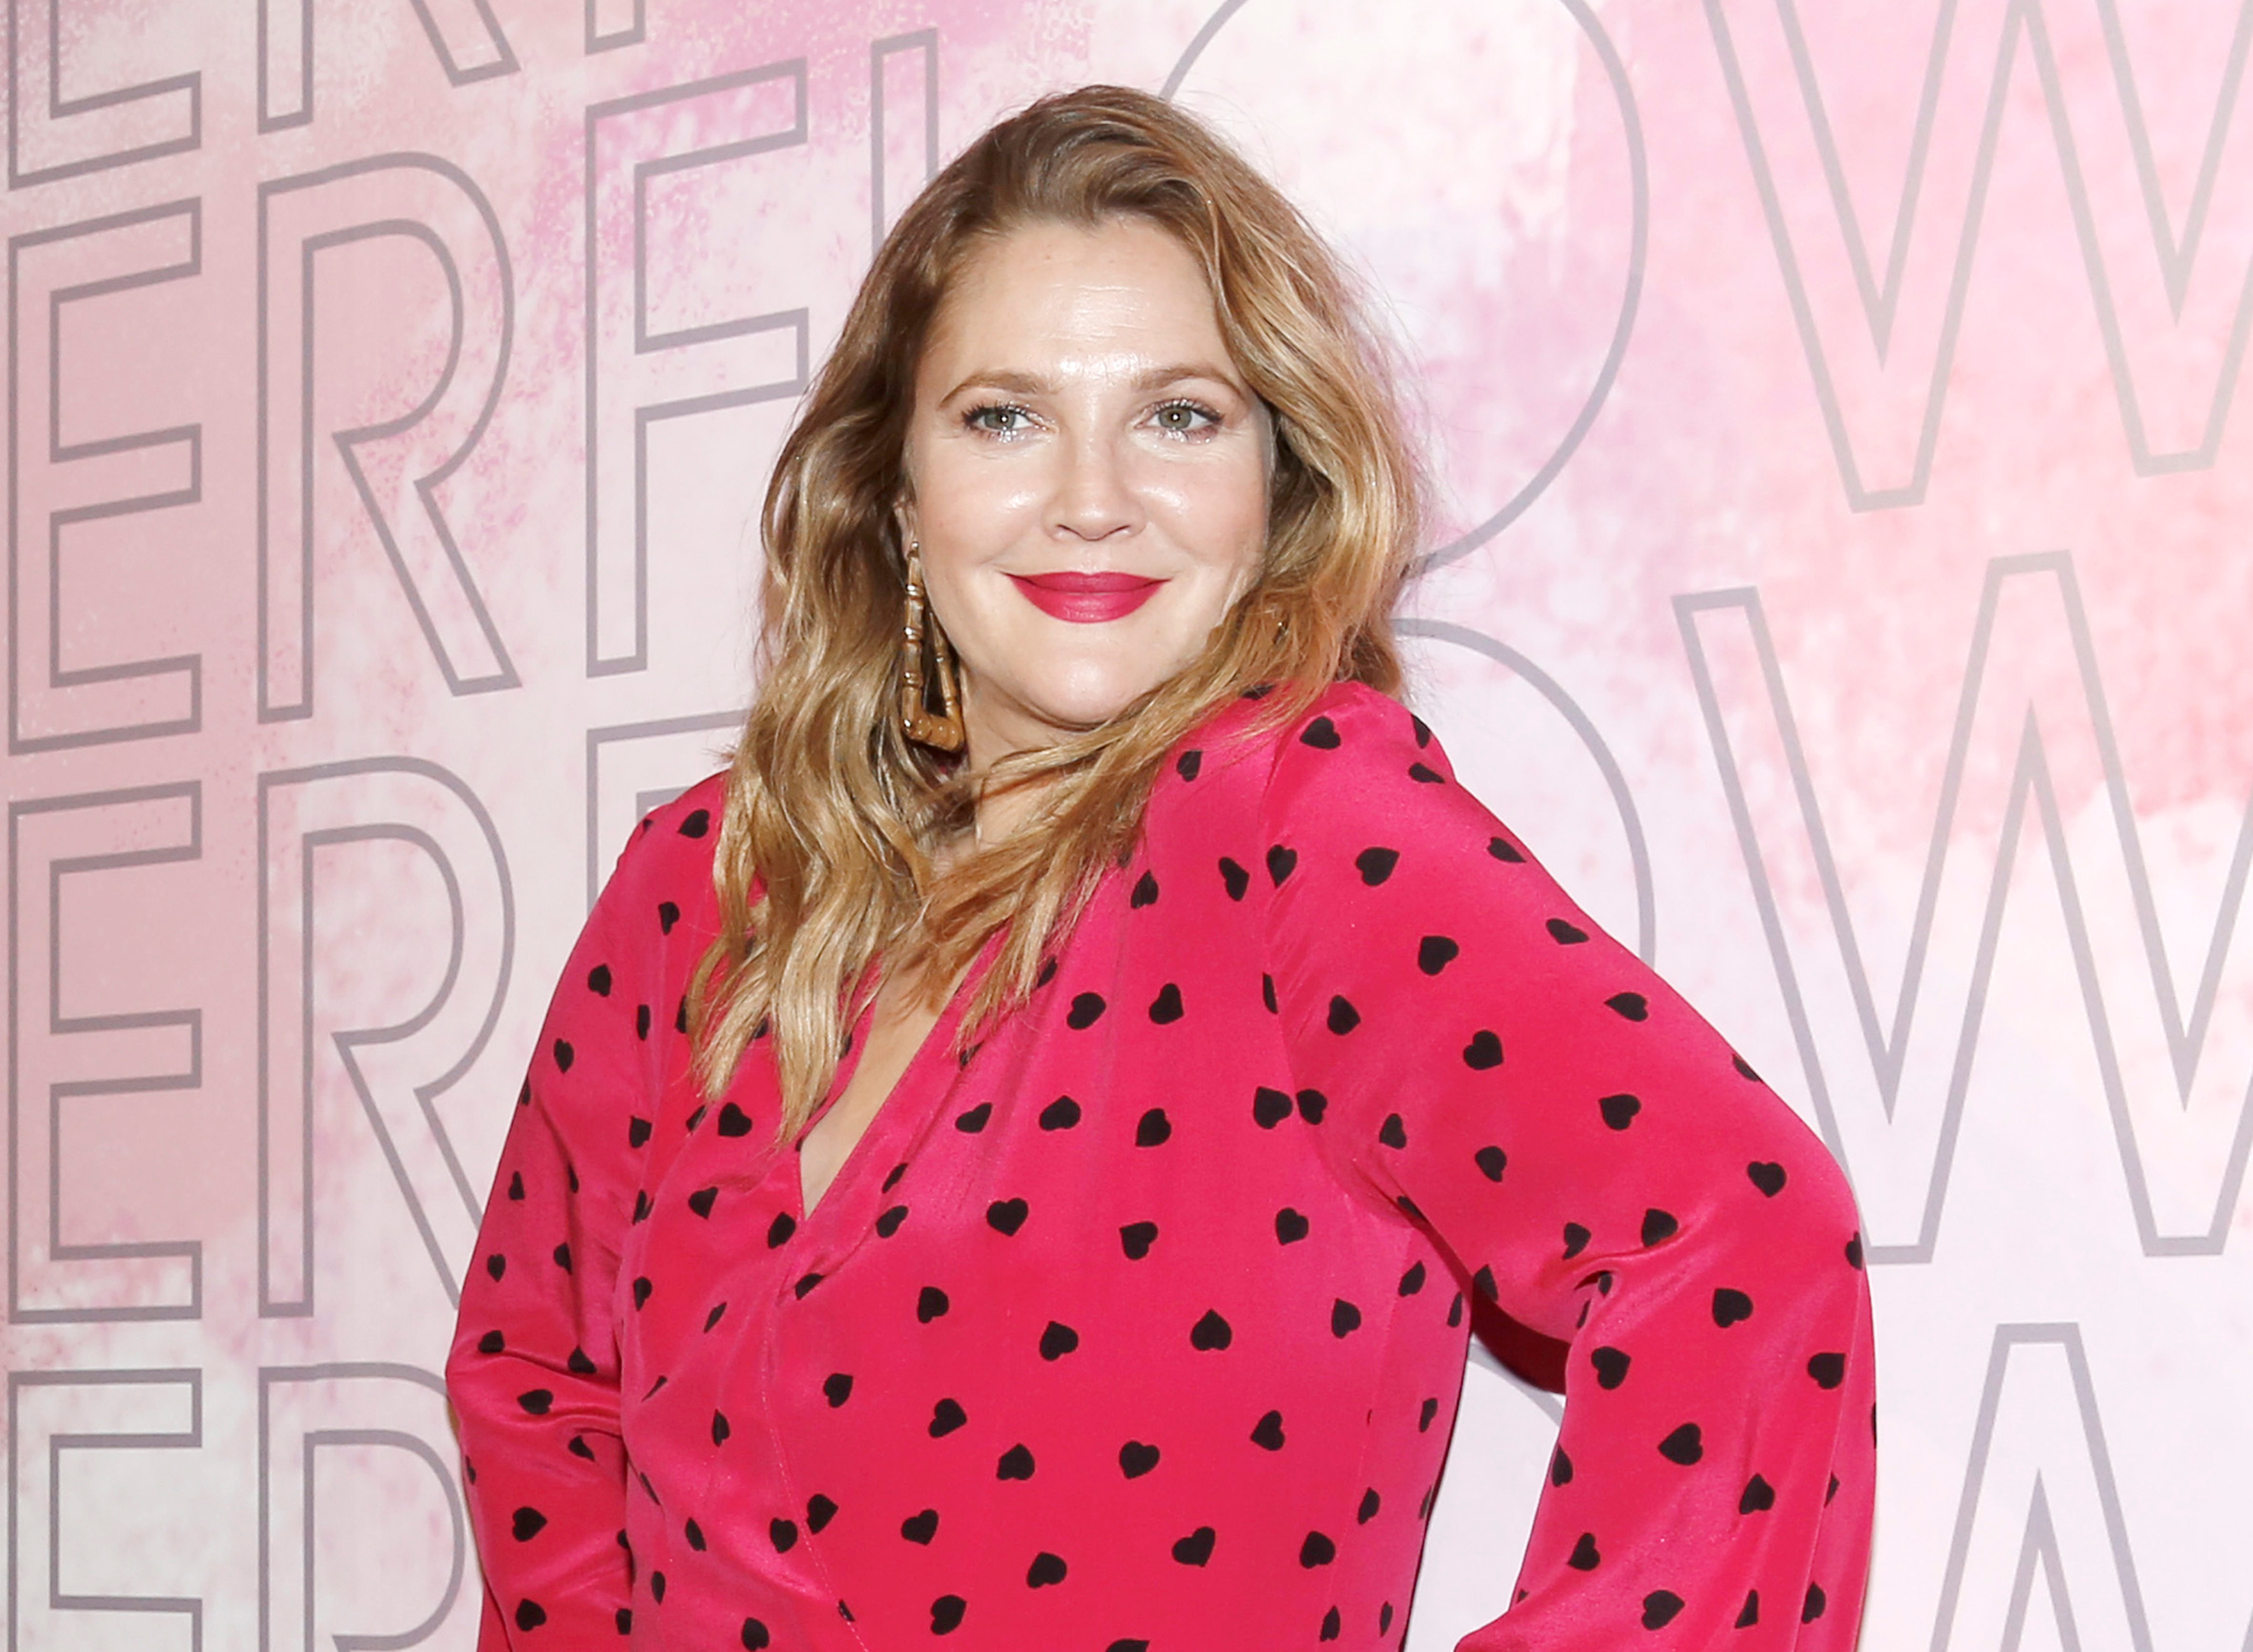 """Drew Barrymore launches her """"Beauty Flower"""" cosmetics line in Mexico City on Nov. 28, 2018."""